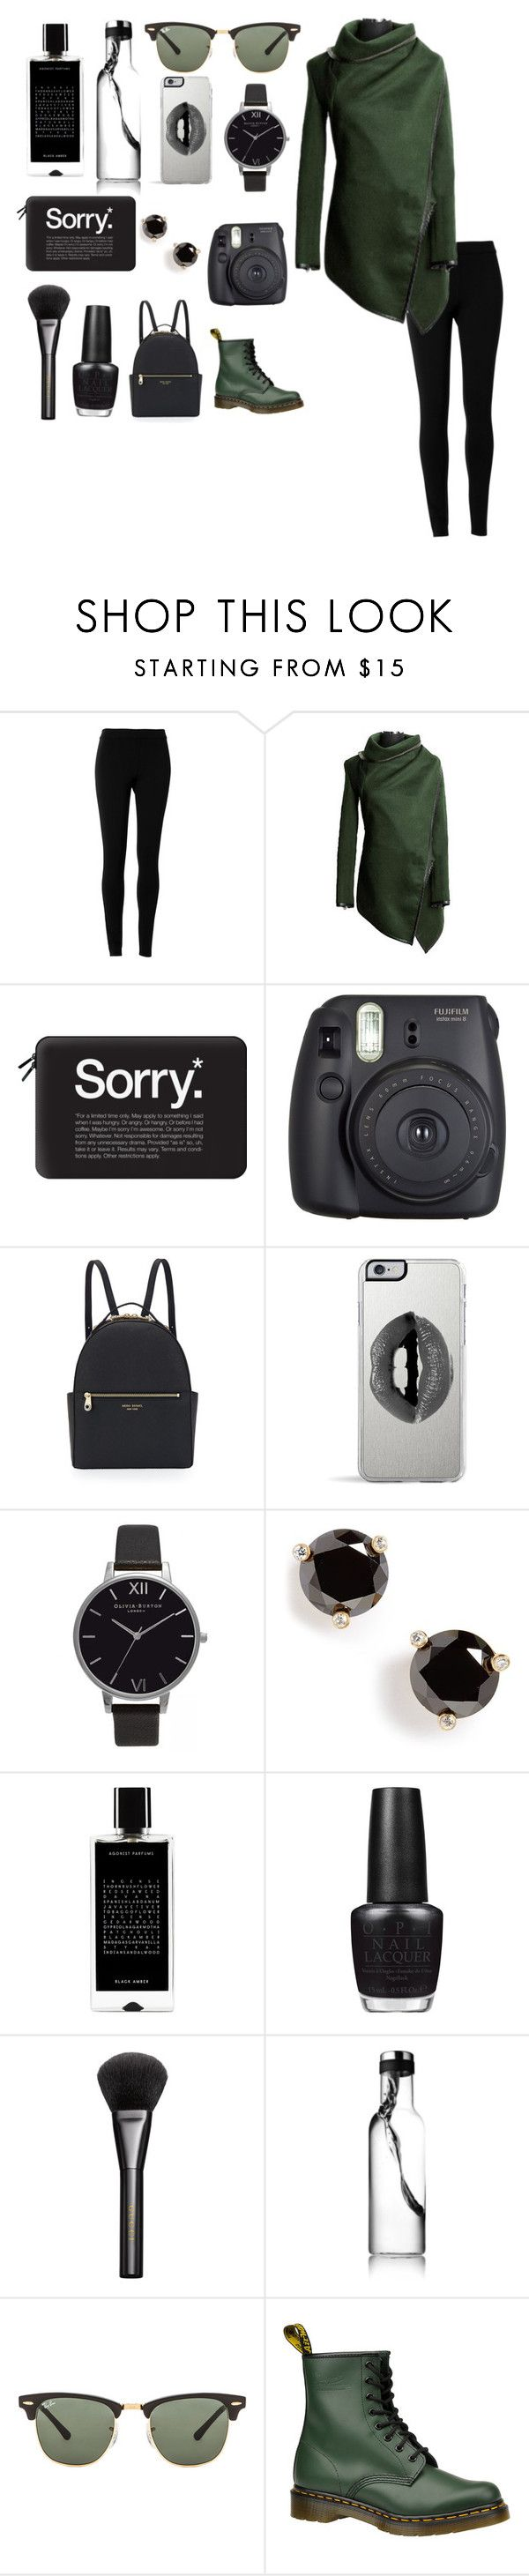 """""""Dope'd  Up"""" by feminstqueen ❤ liked on Polyvore featuring Max Studio, Casetify, Fuji, Henri Bendel, Lipsy, Olivia Burton, Kate Spade, Agonist, OPI and Gucci"""